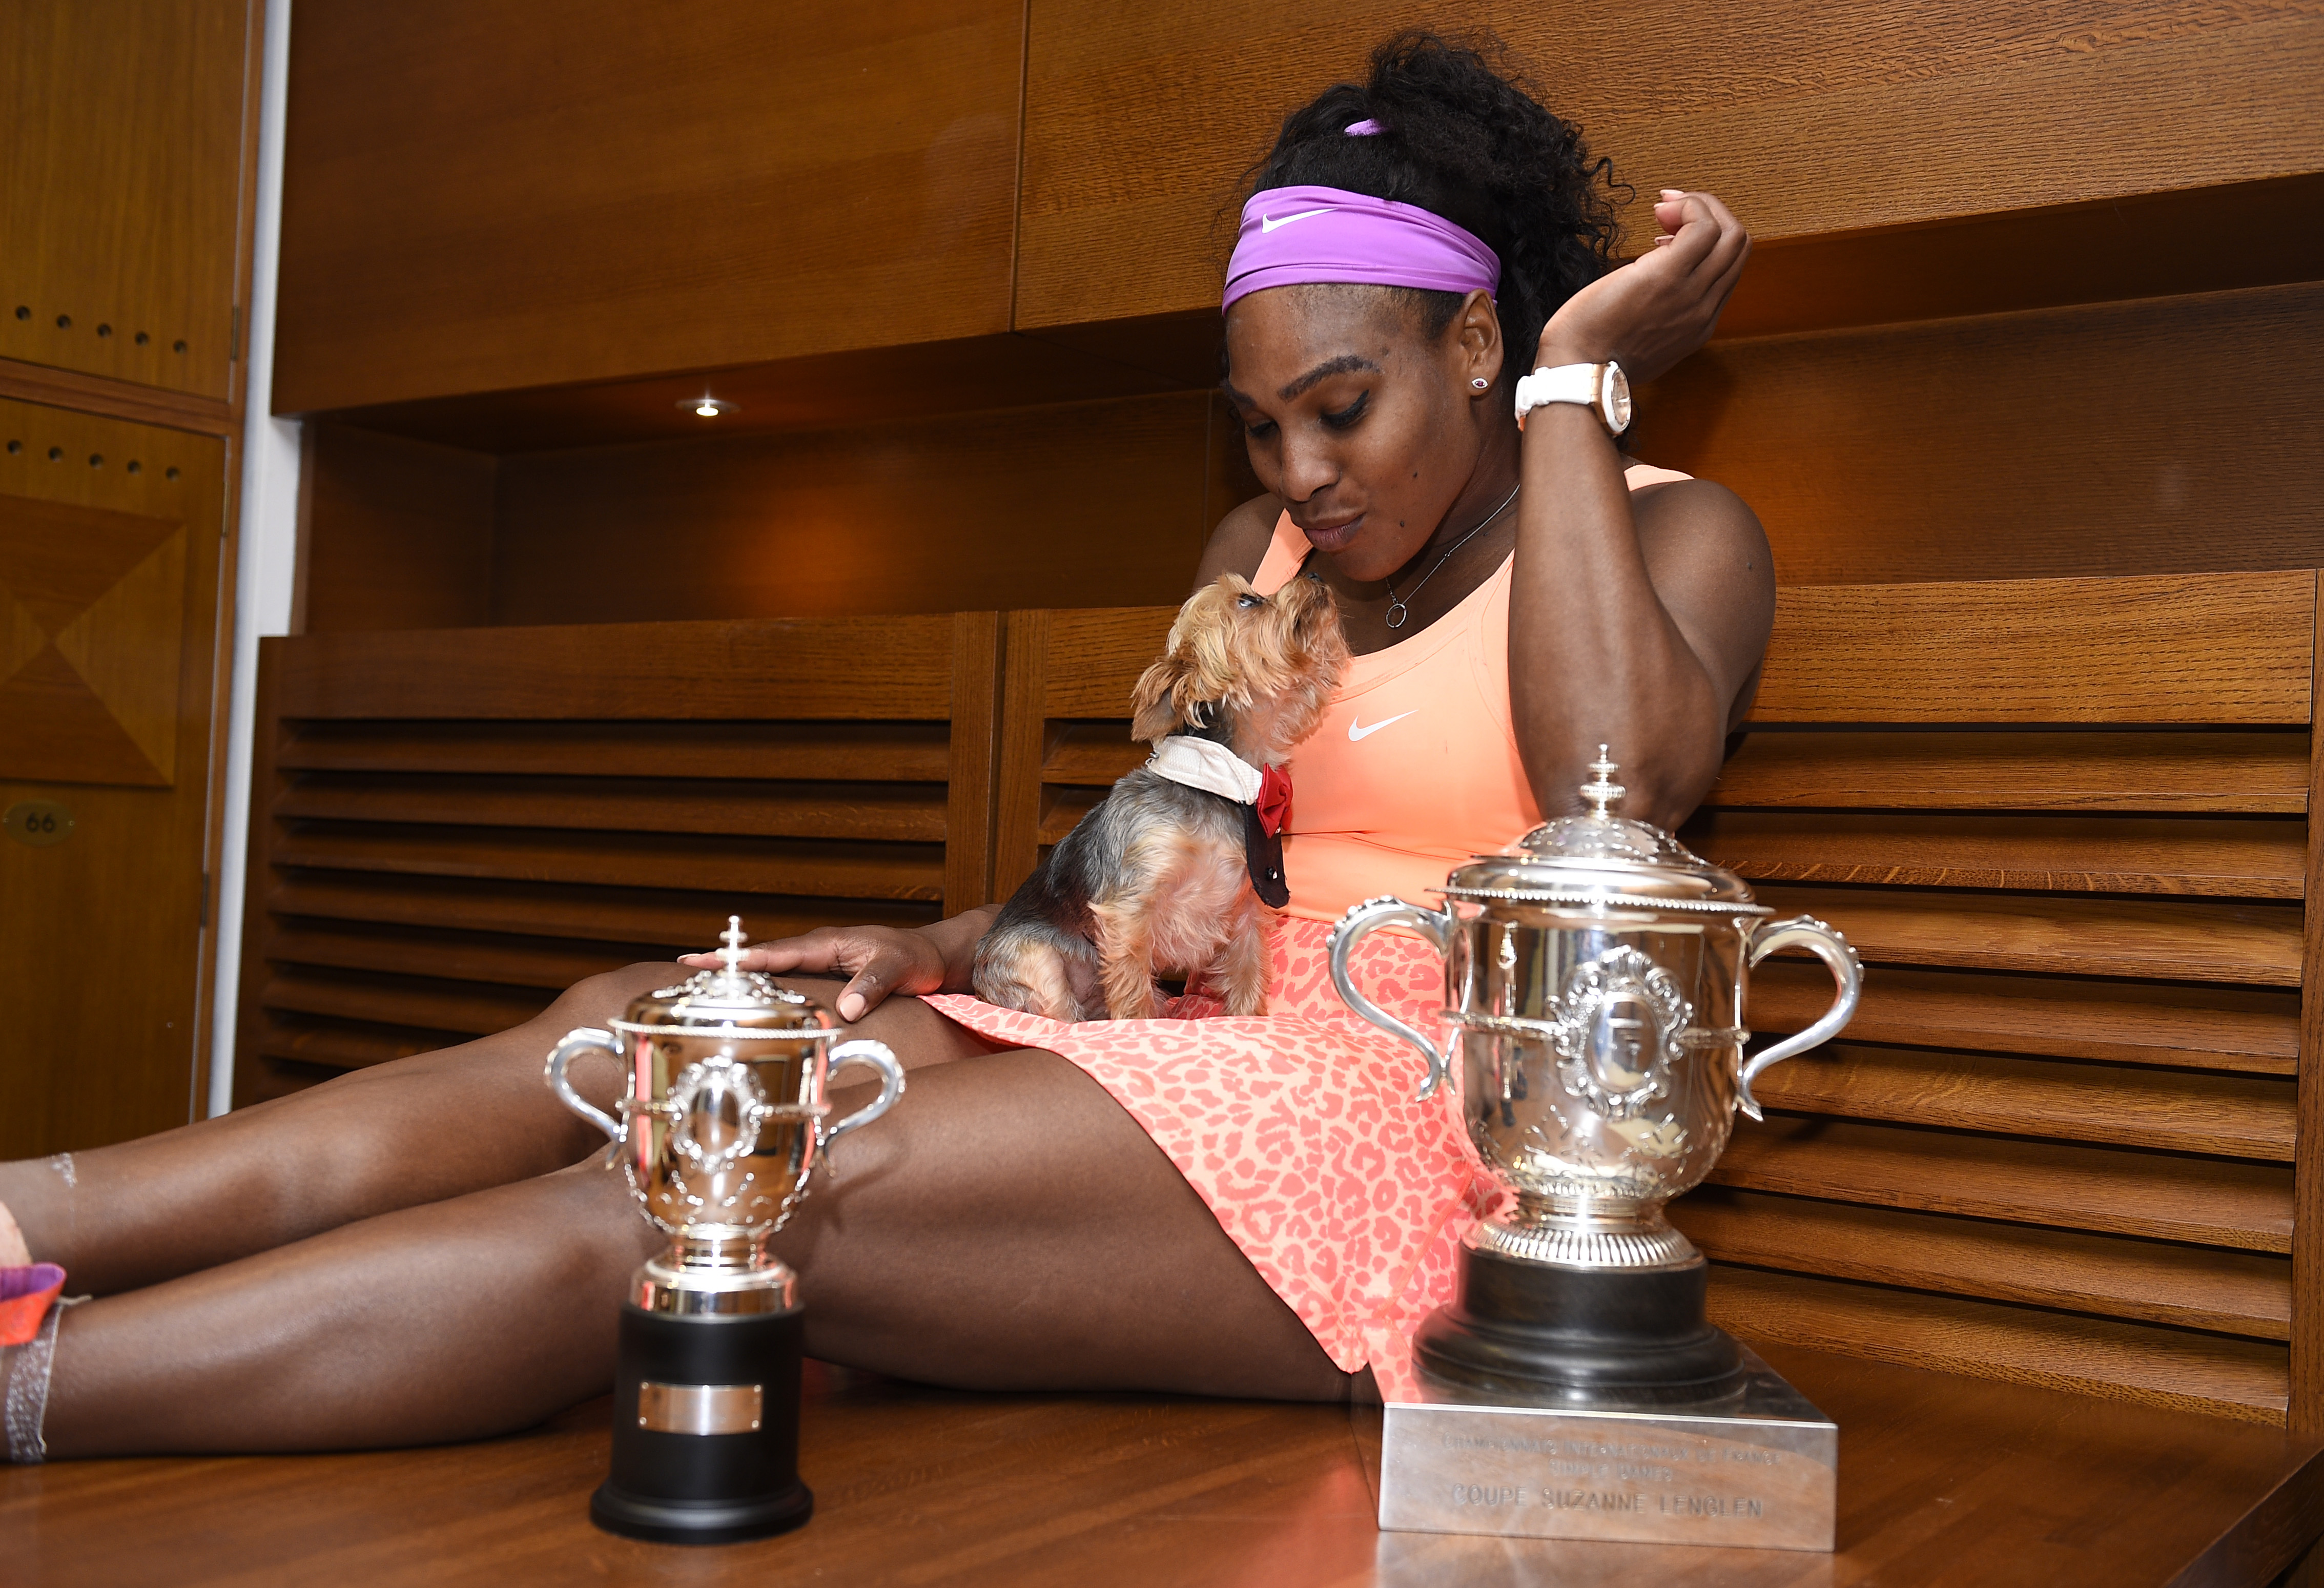 Serena Williams of the U.S. poses with her trophy and her dog named Chip in the dressing room after winning the women's singles final match against Lucie Safarova of the Czech Republic during the French Open tennis tournament at the Roland Garros stadium in Paris, France, June 6, 2015.